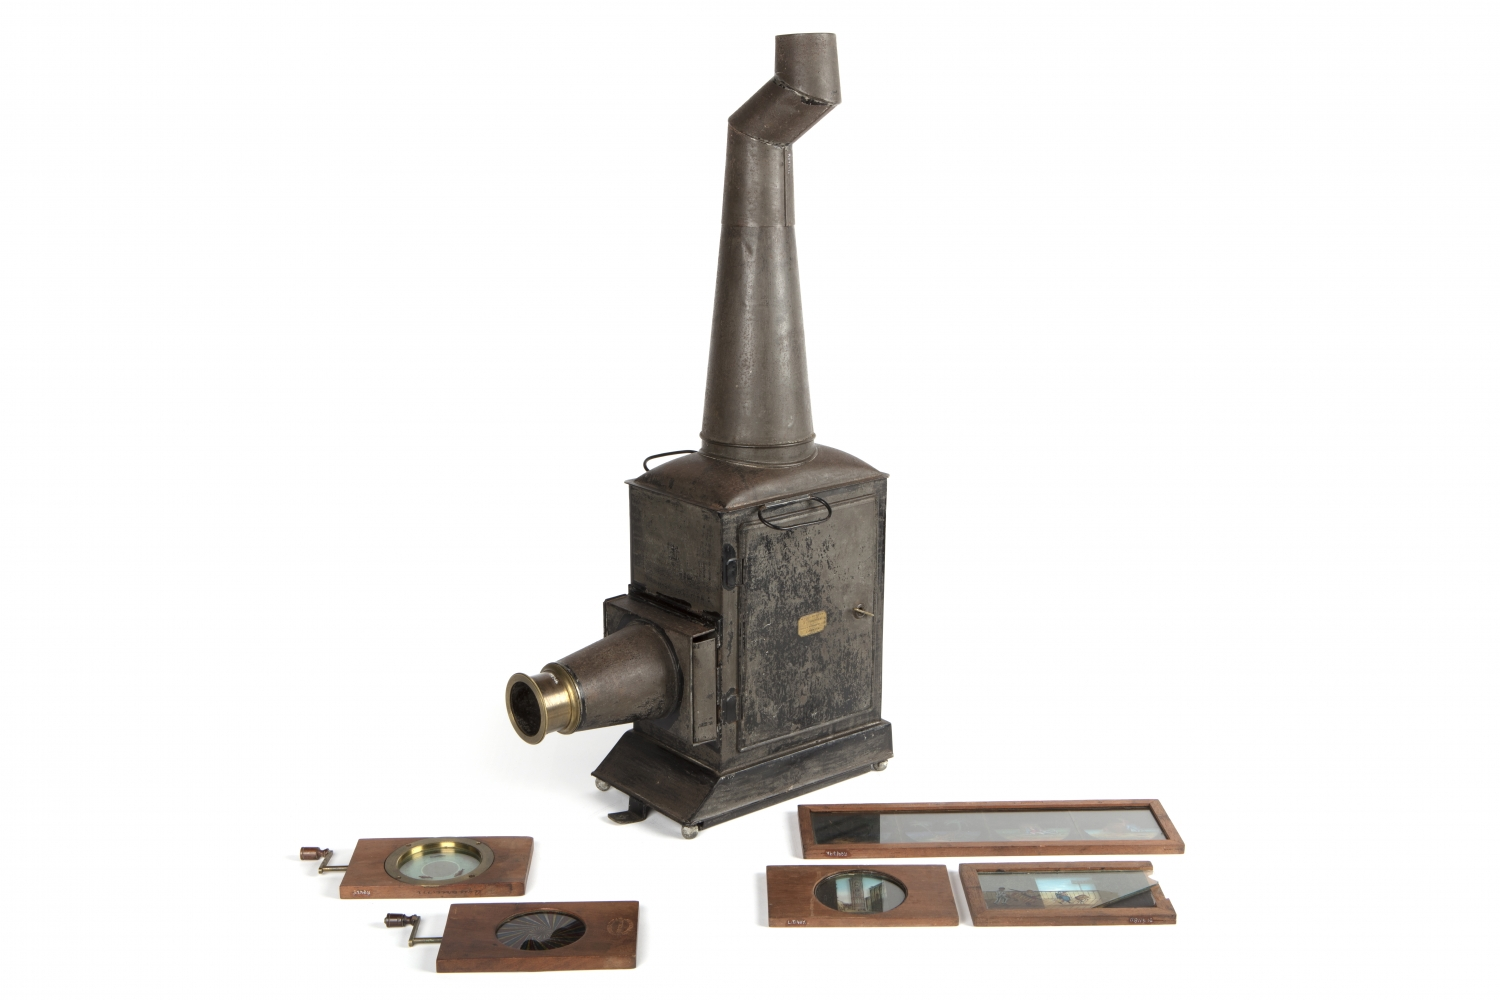 Wooden and metal projector with chimney, with wooden framed slides at base.